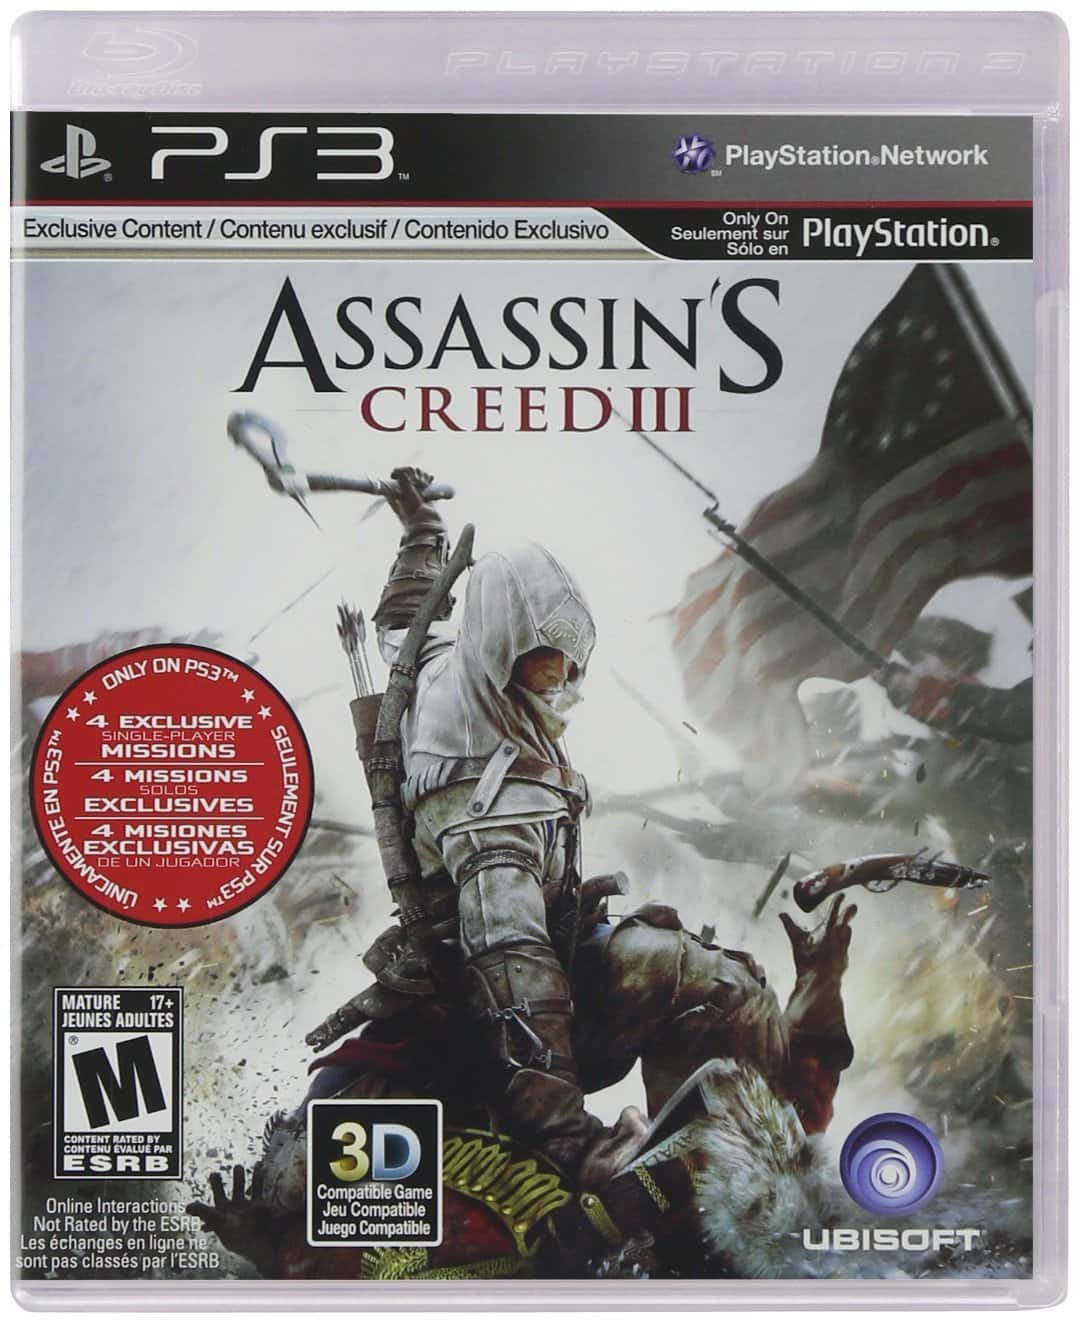 Assassin's Creed III (PS3 Used Like New) $1.56 + Free Shipping w/ Prime or FSSS